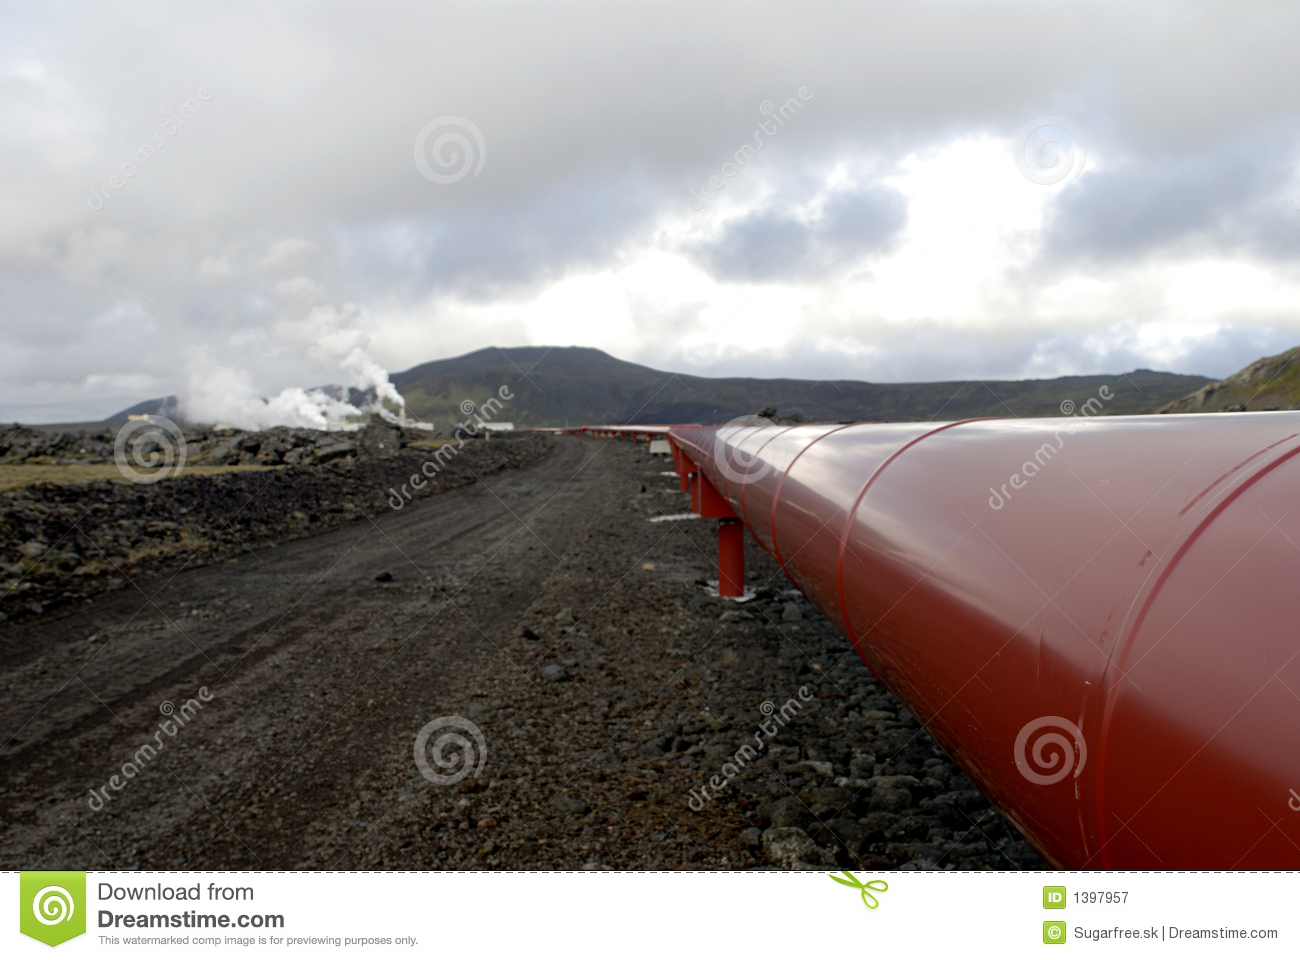 Heating pipes in Iceland